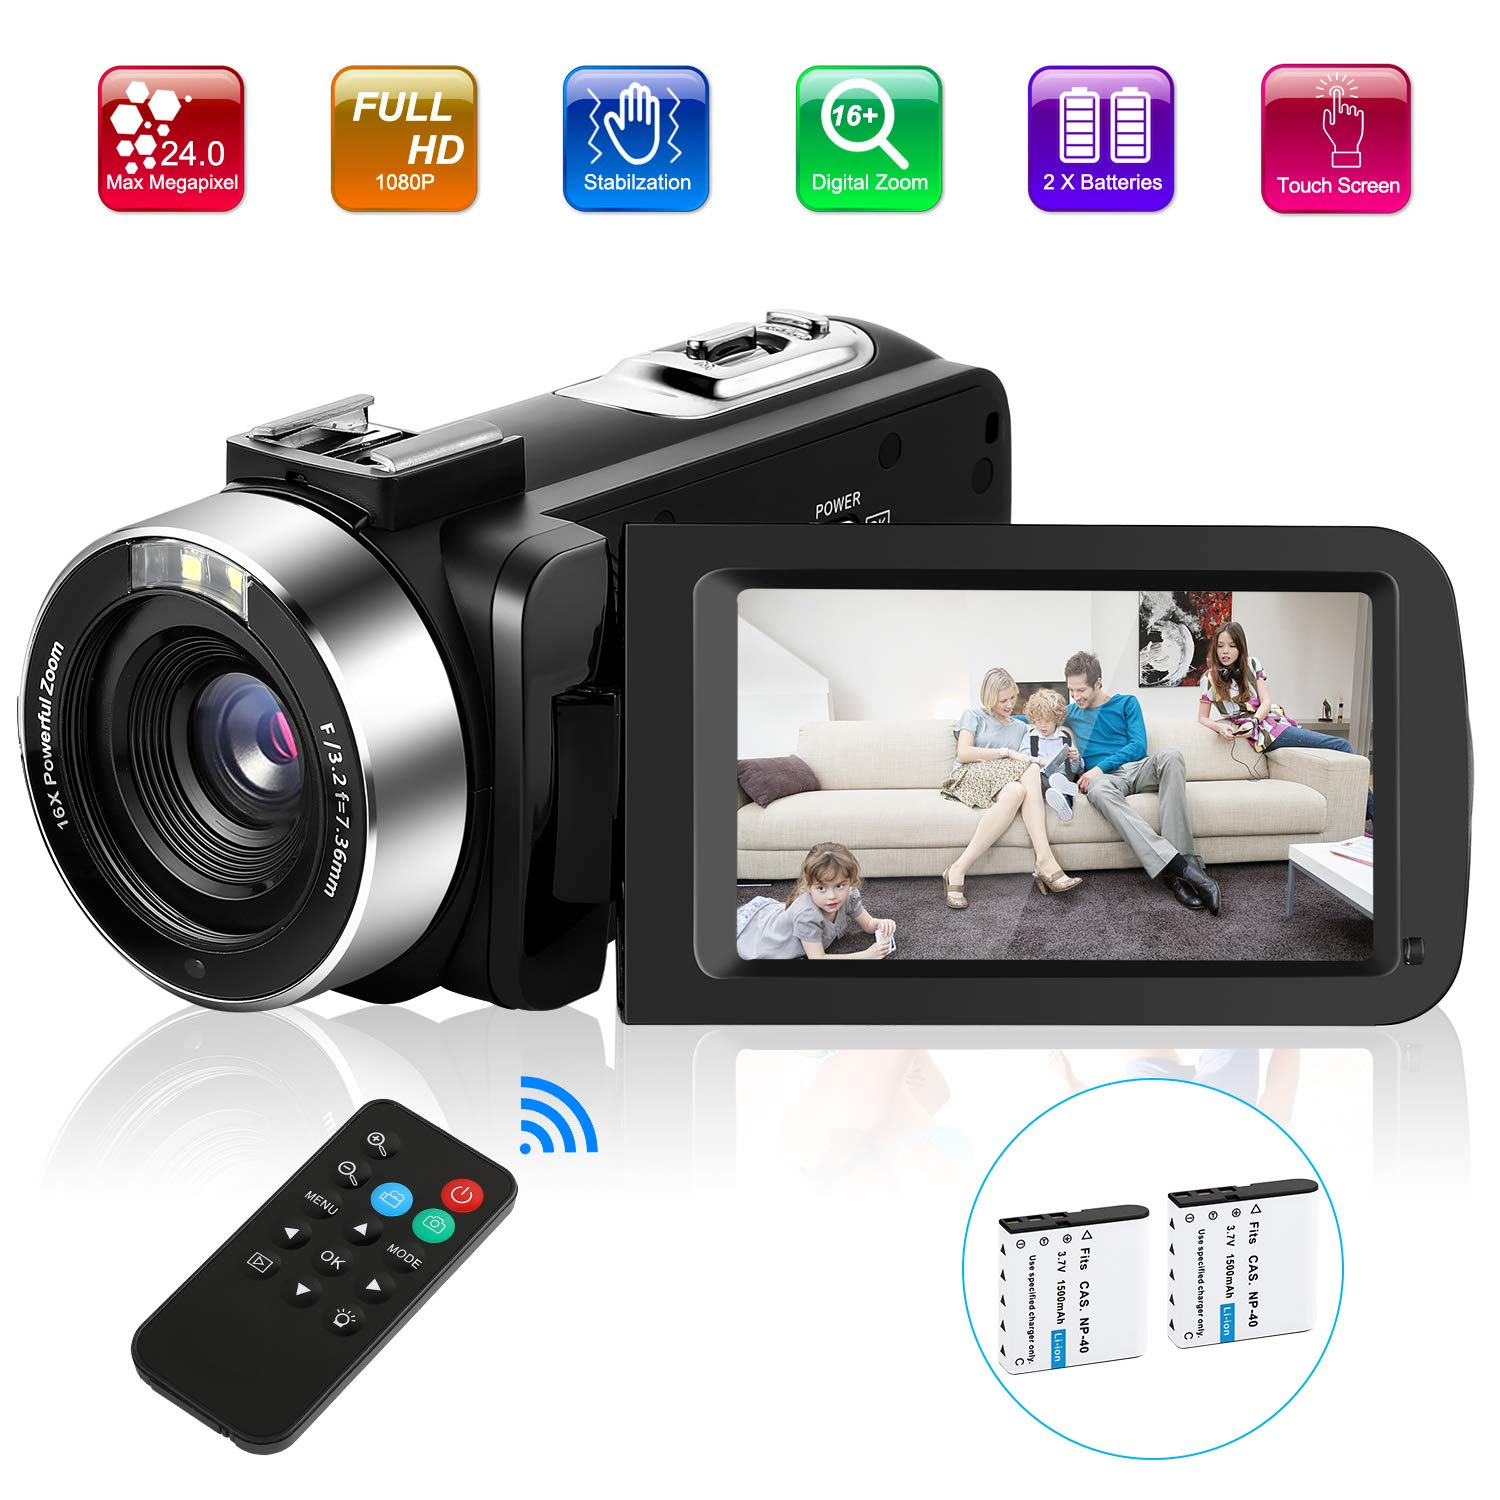 Video Camera Camcorder, UPSTONE Digital Vlog Camera for YouTube Full HD 1080P Camcorder 30FPS 24.0MP 16X Digital Zoom with 2 Batteries and Remote Control by RICH